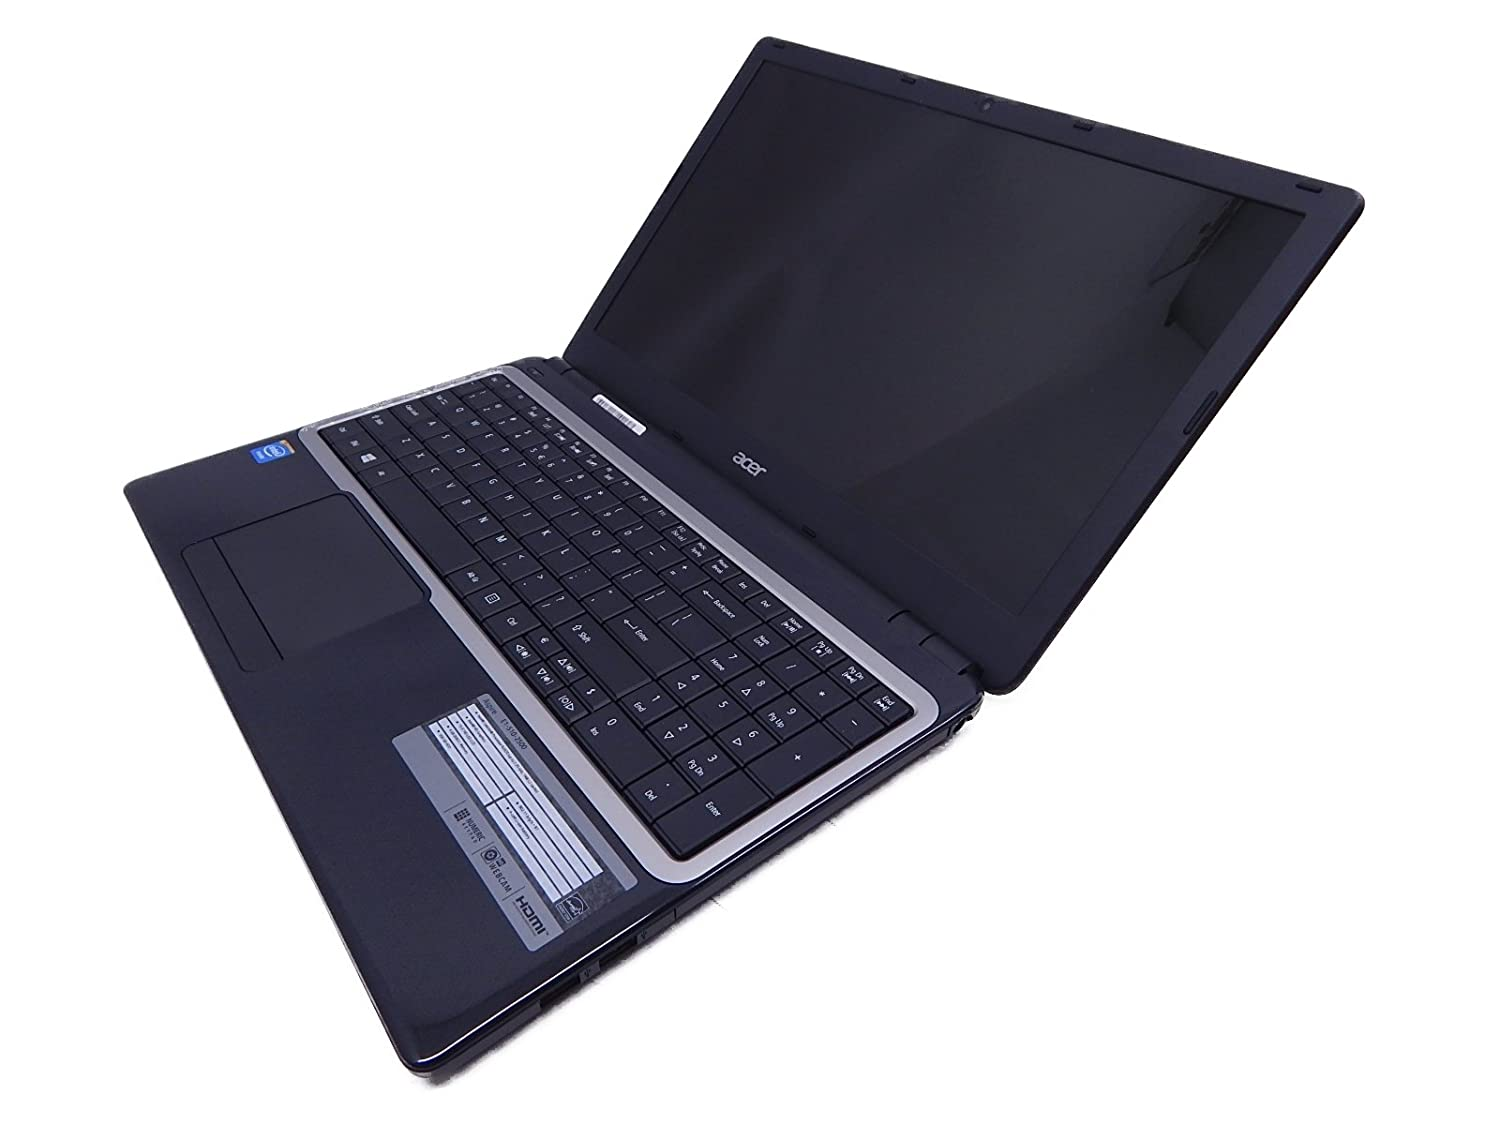 ACER E1-510 WINDOWS 8 X64 TREIBER